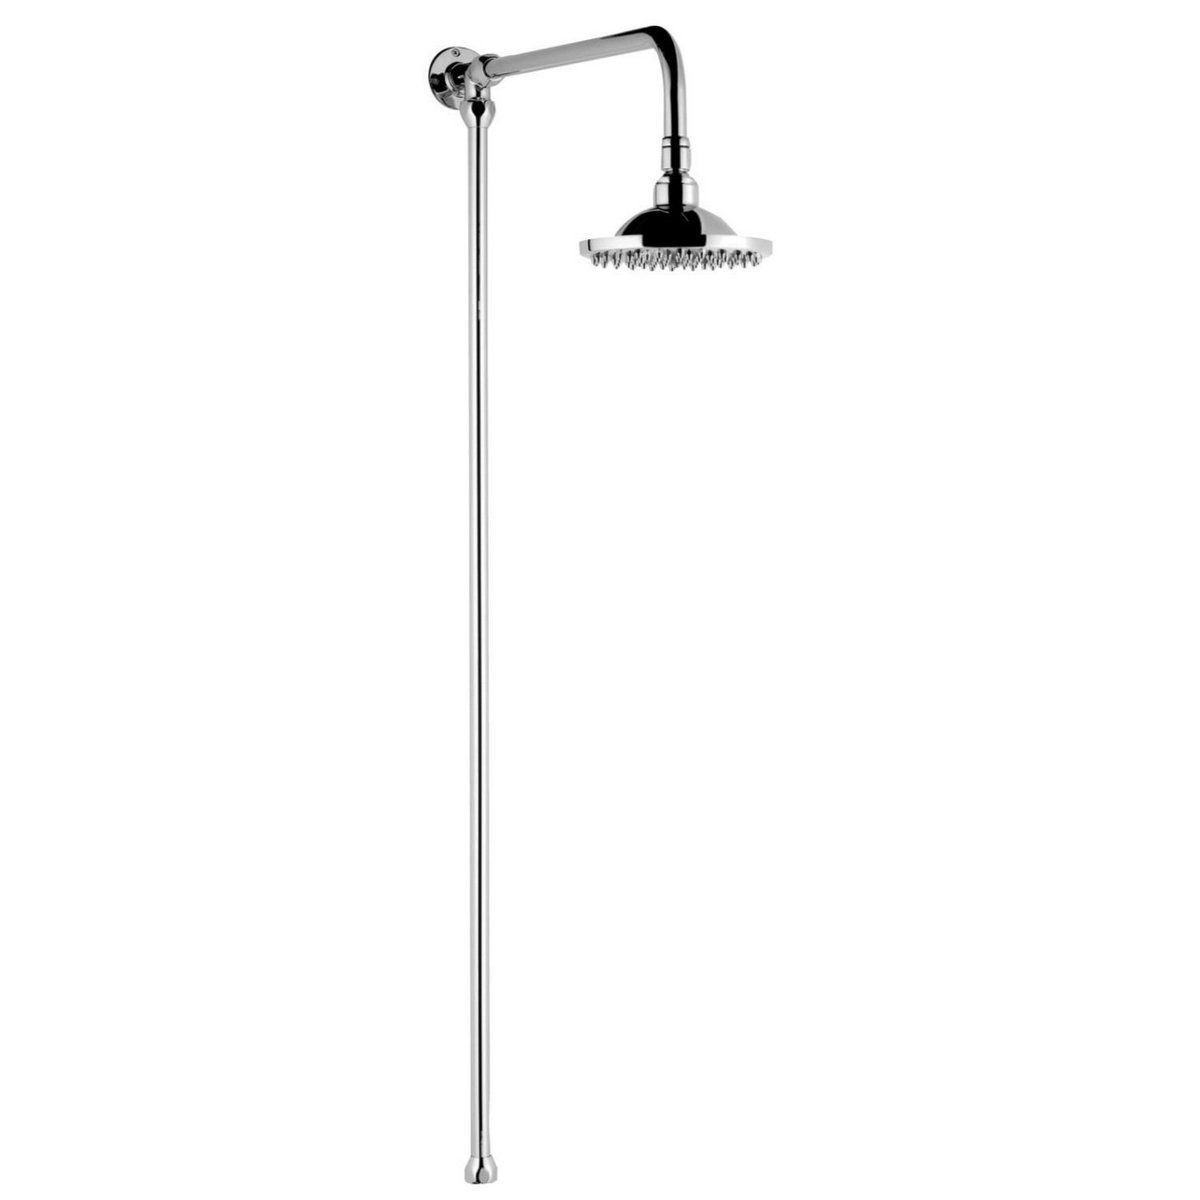 Bayswater Rigid Riser Kit With Overhead Shower